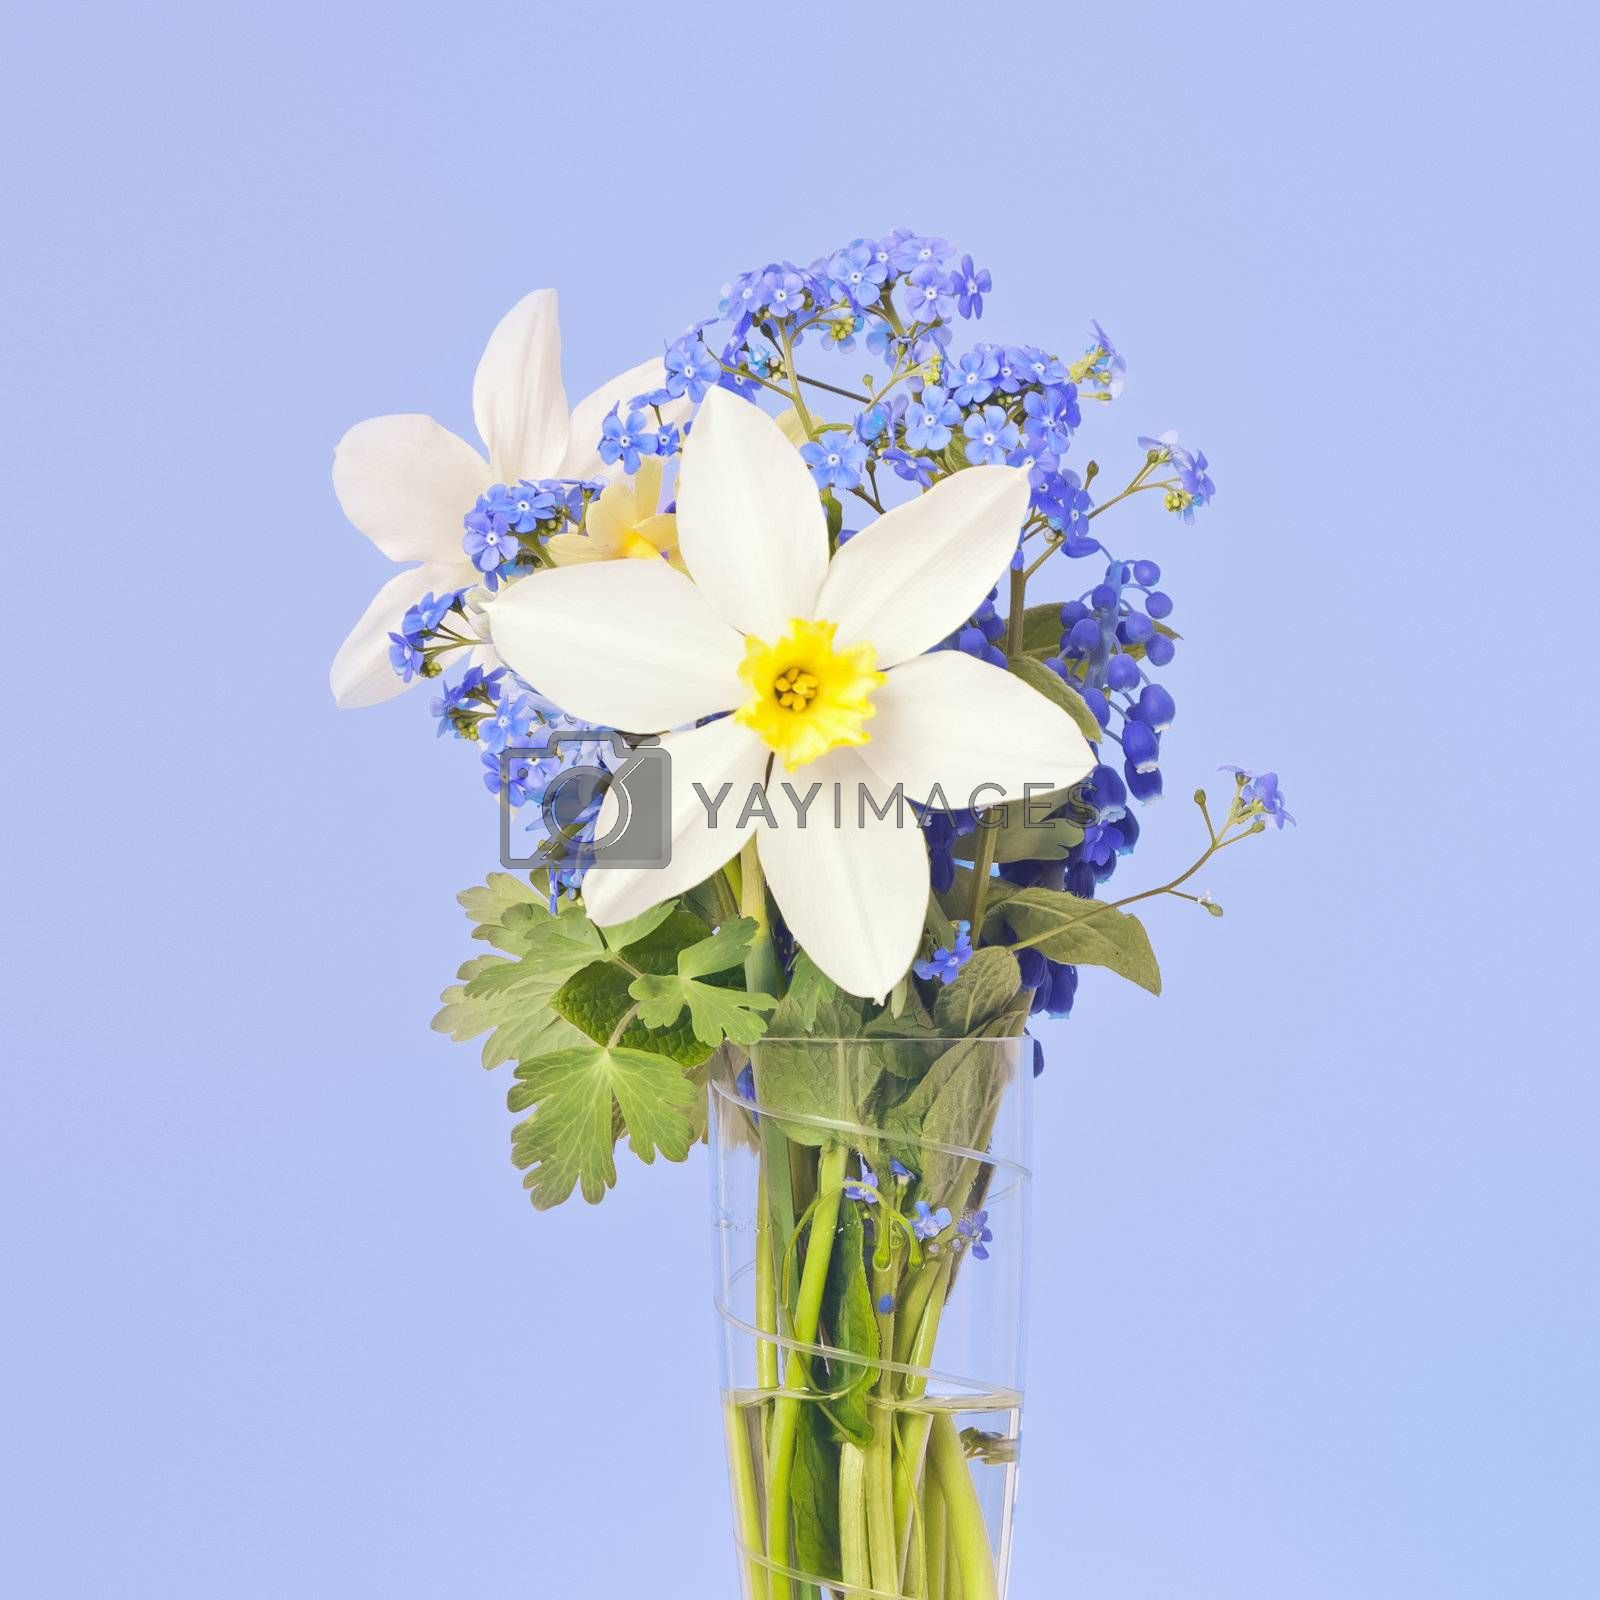 An image of two white daffodil in a vase